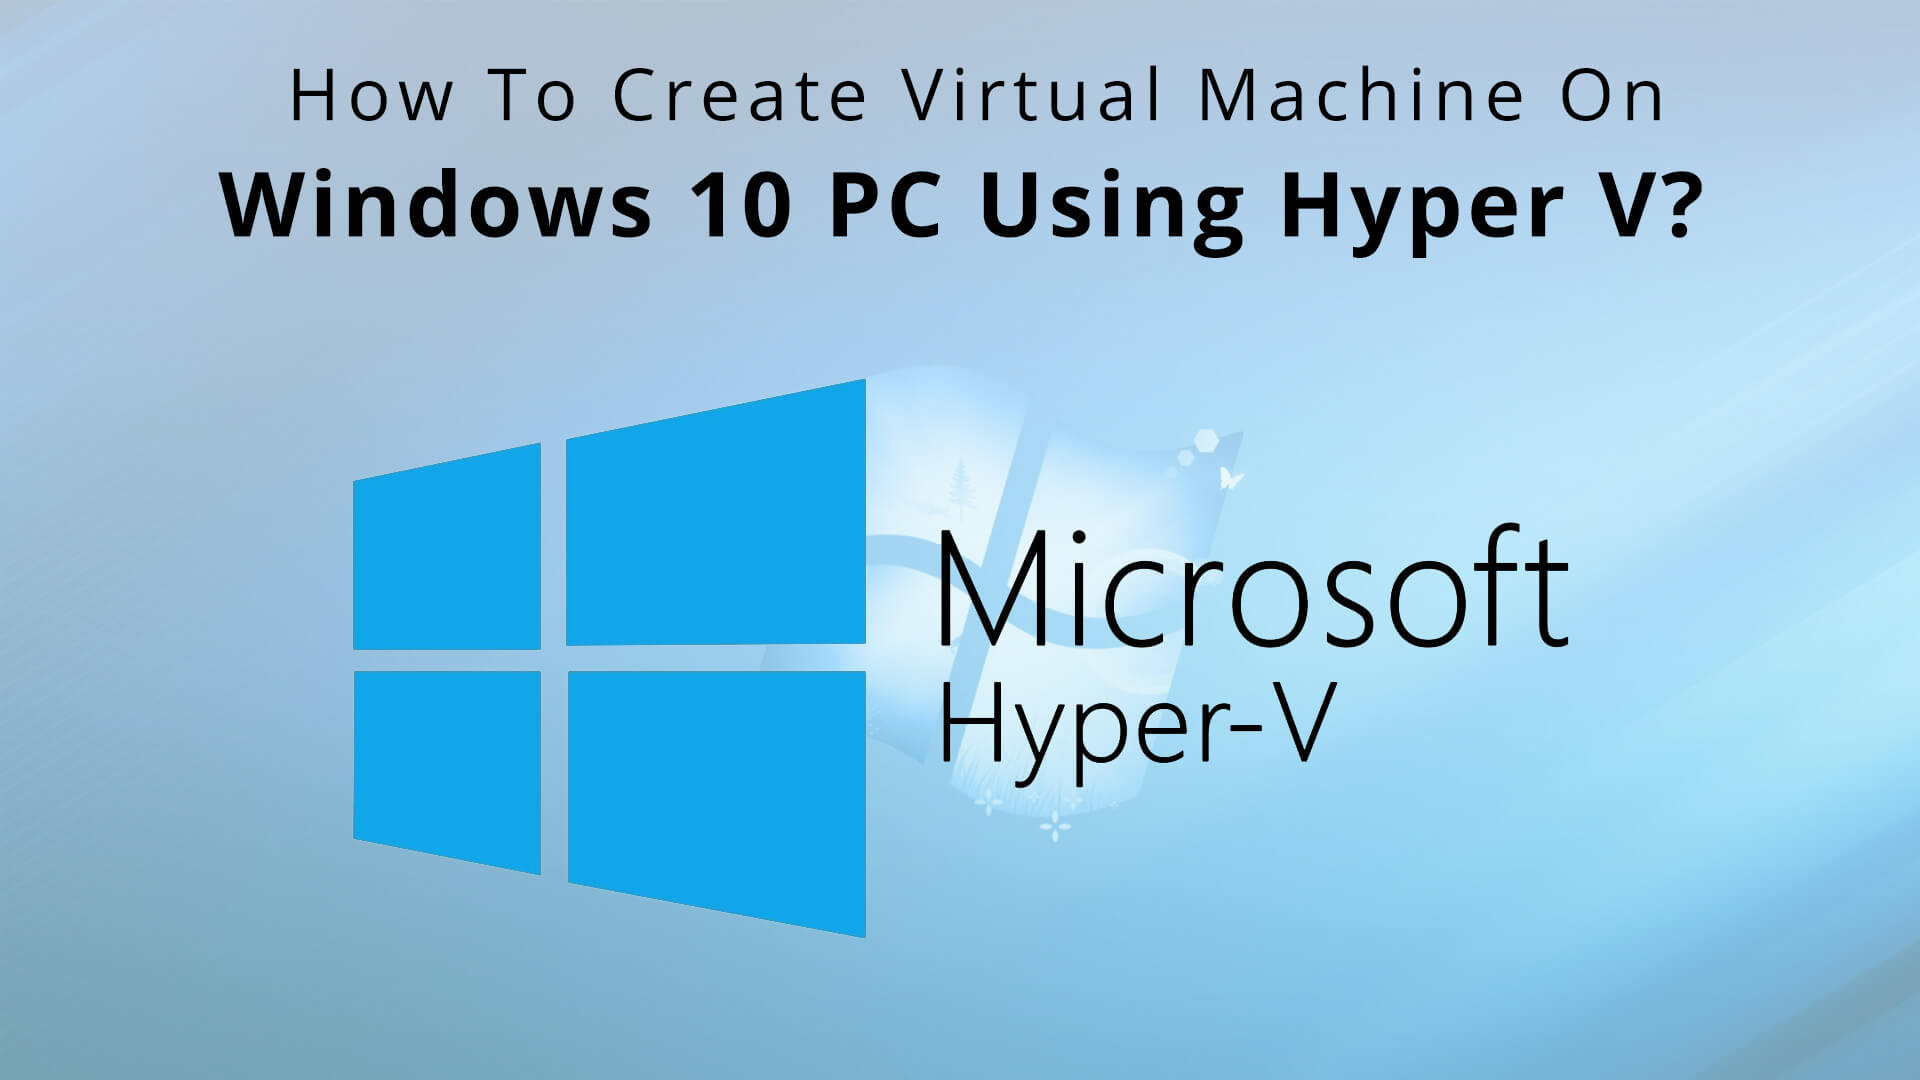 How to Create a Virtual Machine on Windows 10 usinf hyper v